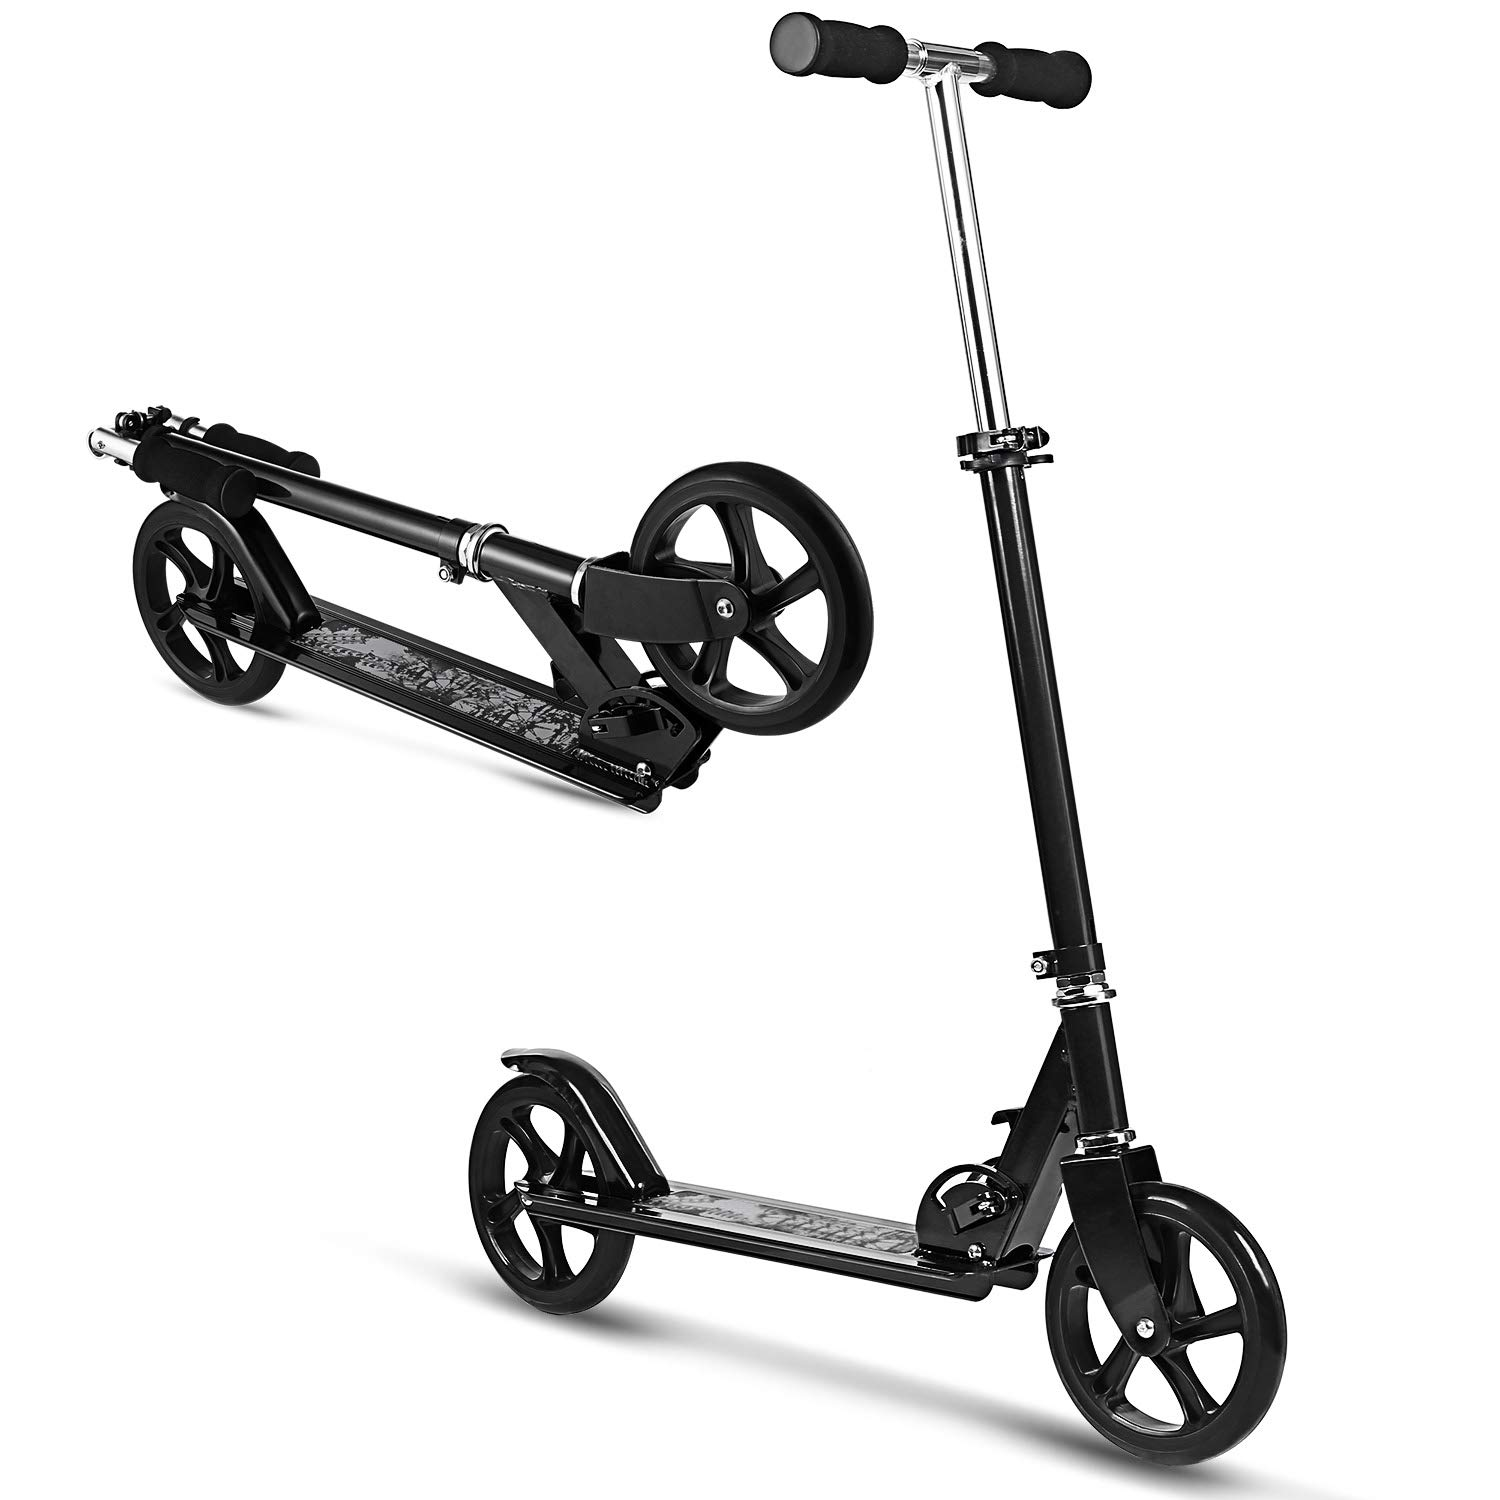 WeSkate Scooter for Adults/Teens, Big Wheels Scooter Easy Folding Kick Scooter Durable Push Scooter Support 220lbs Suitable for Age 8 Up Teens/Adults (Black Without Suspension) by WeSkate